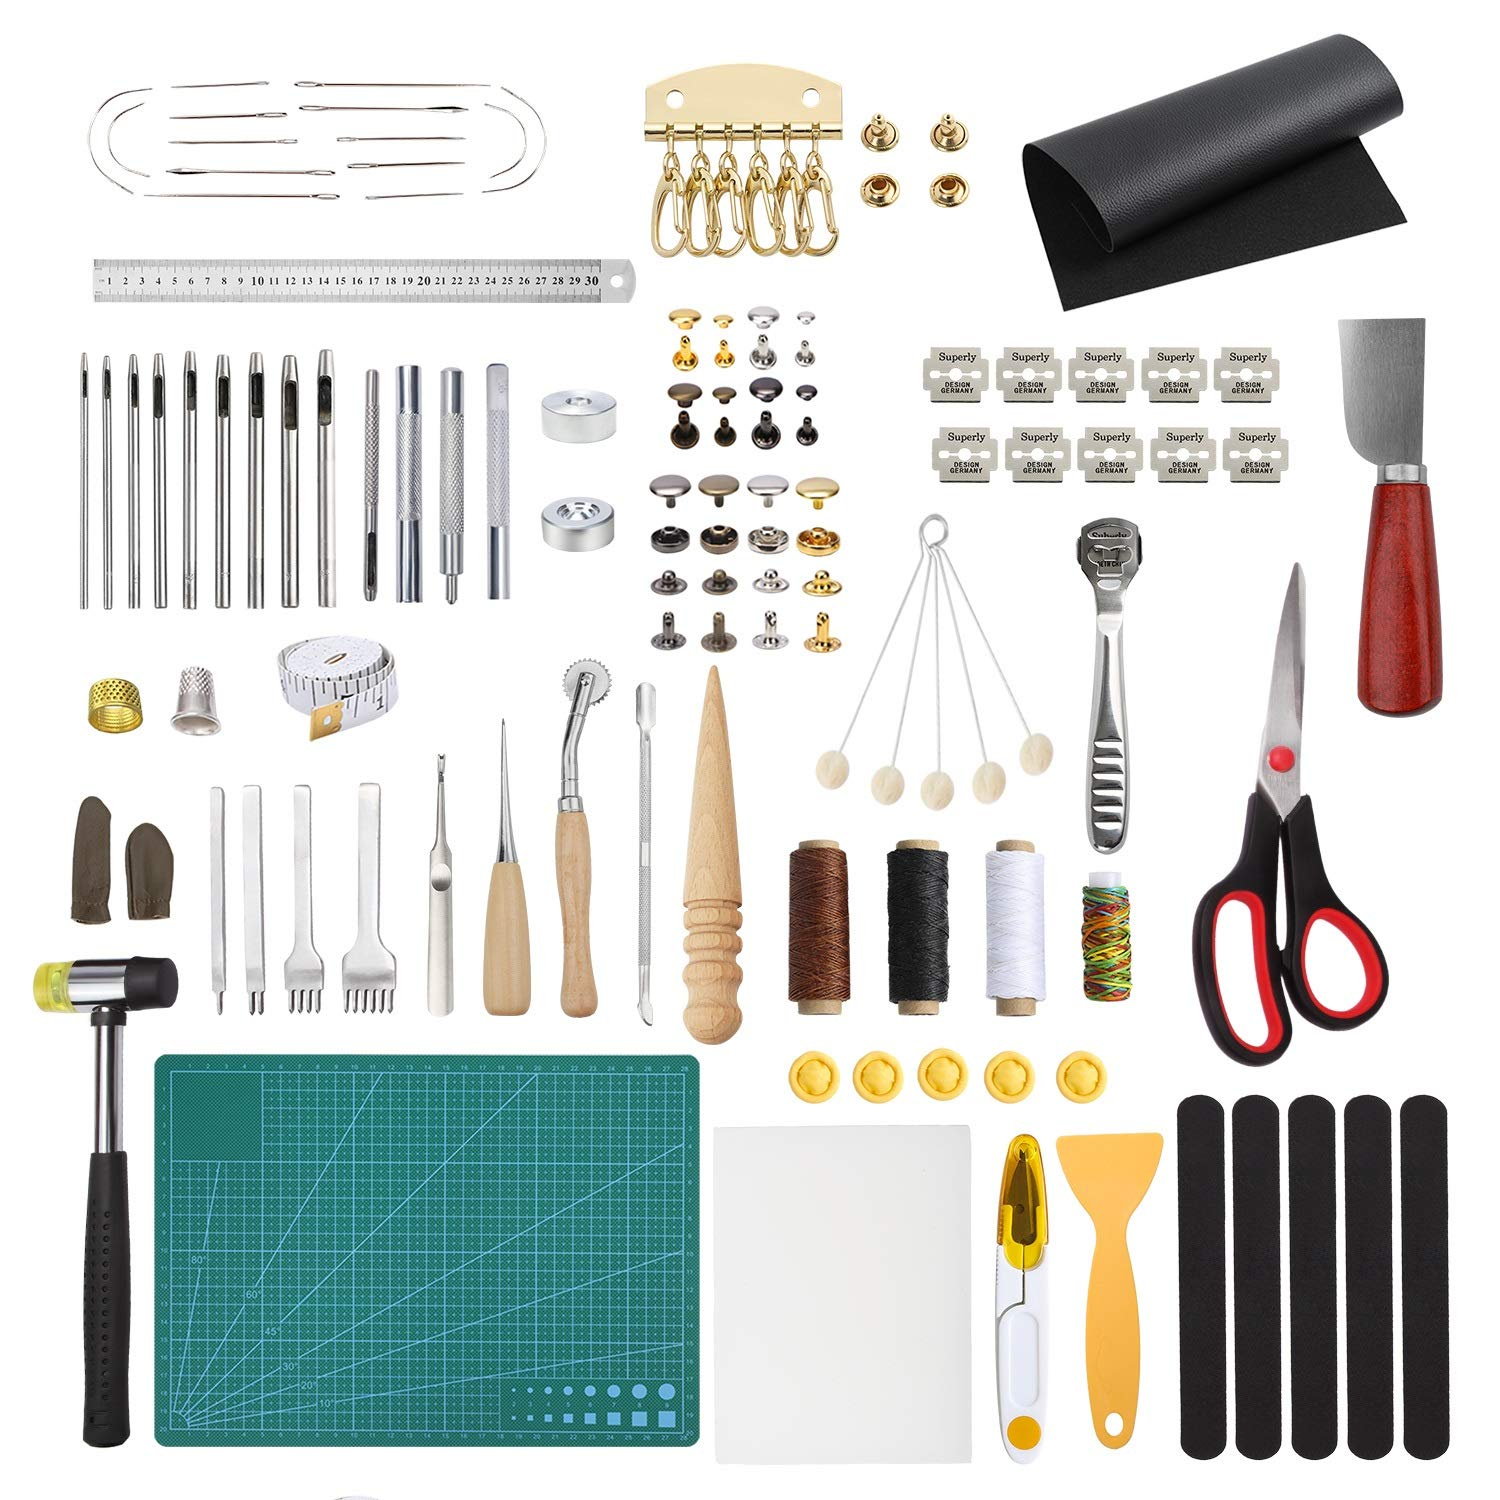 Dorhui Leather Working Tools and Supplies, 203 Pieces Practical Leather Tools Father's Day Gift, Leather Craft Stamping Tools, Prong Punch, Hole Hollow Punch, Matting Cut for Leather DIY